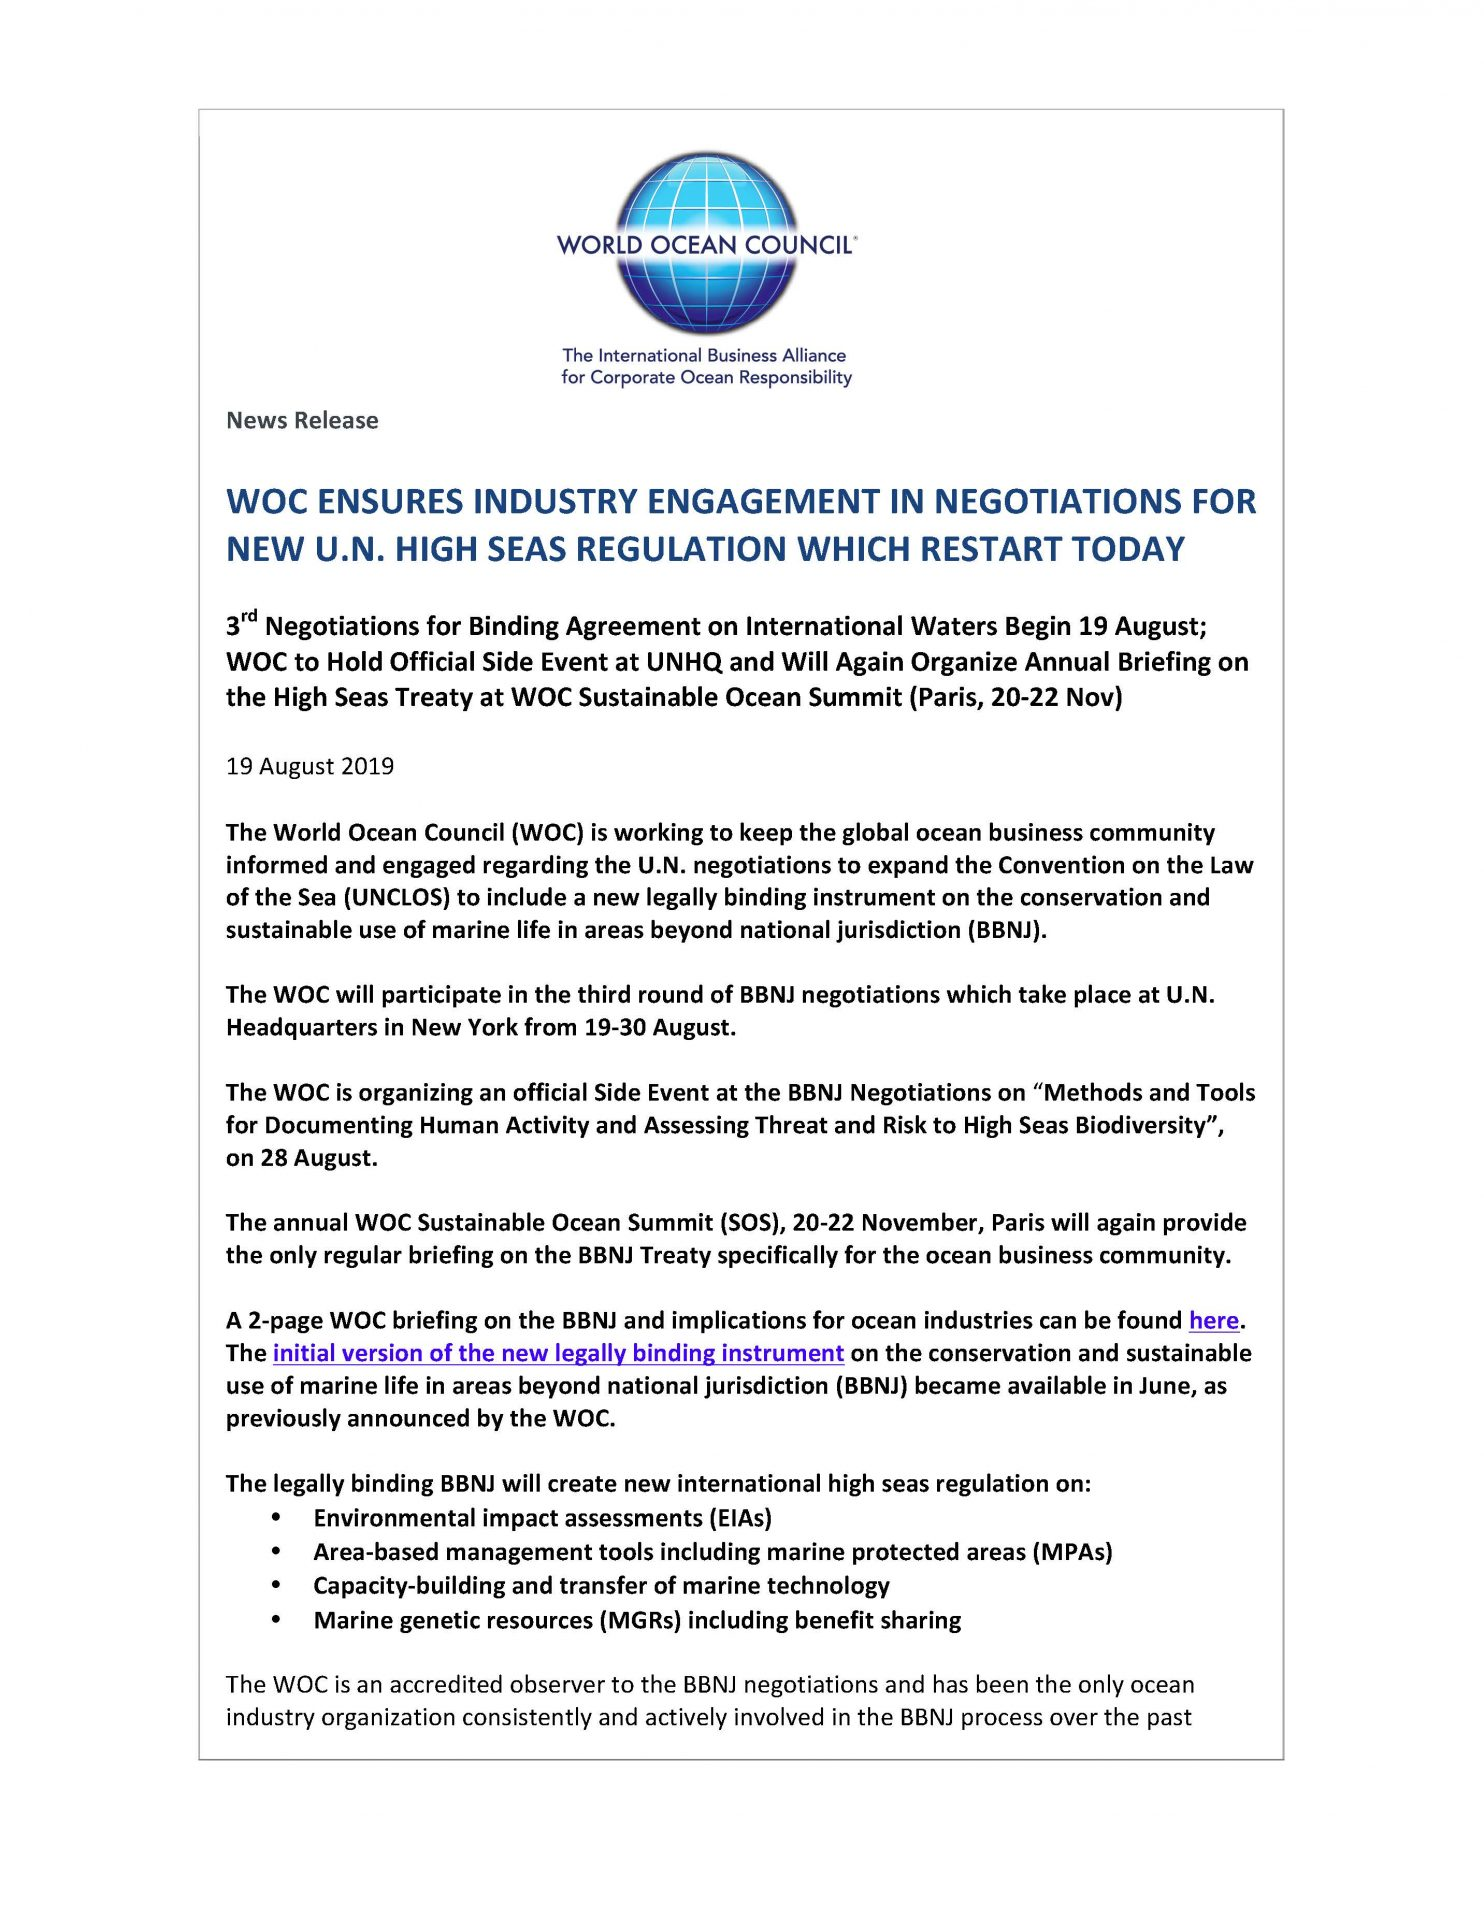 WOC Ensures Industry Engagement in Negotiations for New U.N. High Seas Regulation Which Restart Today - 19 August 2019